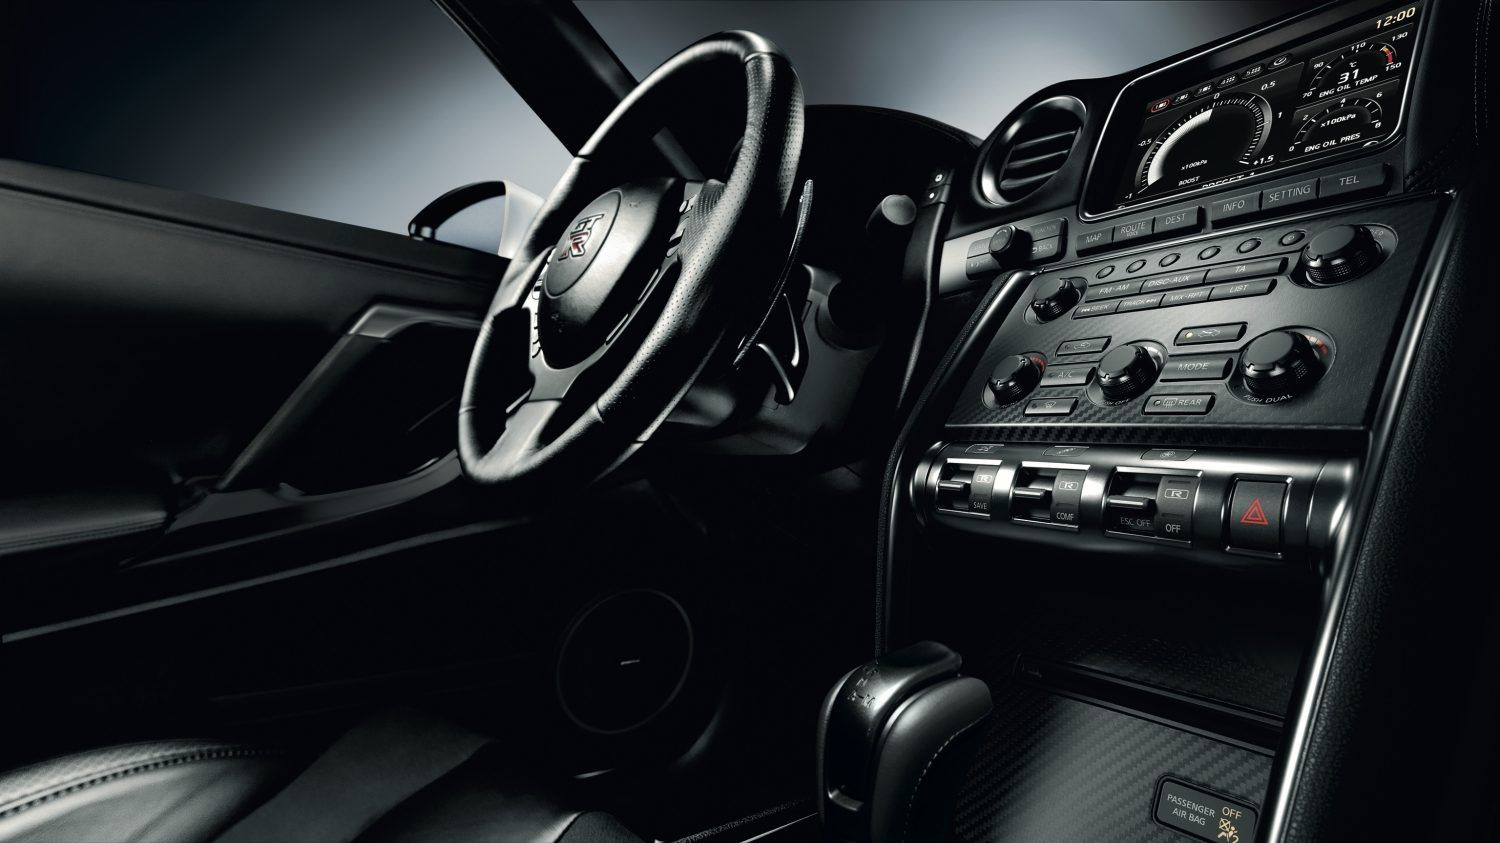 Nissan GT-R - Dashboard and Steering wheel